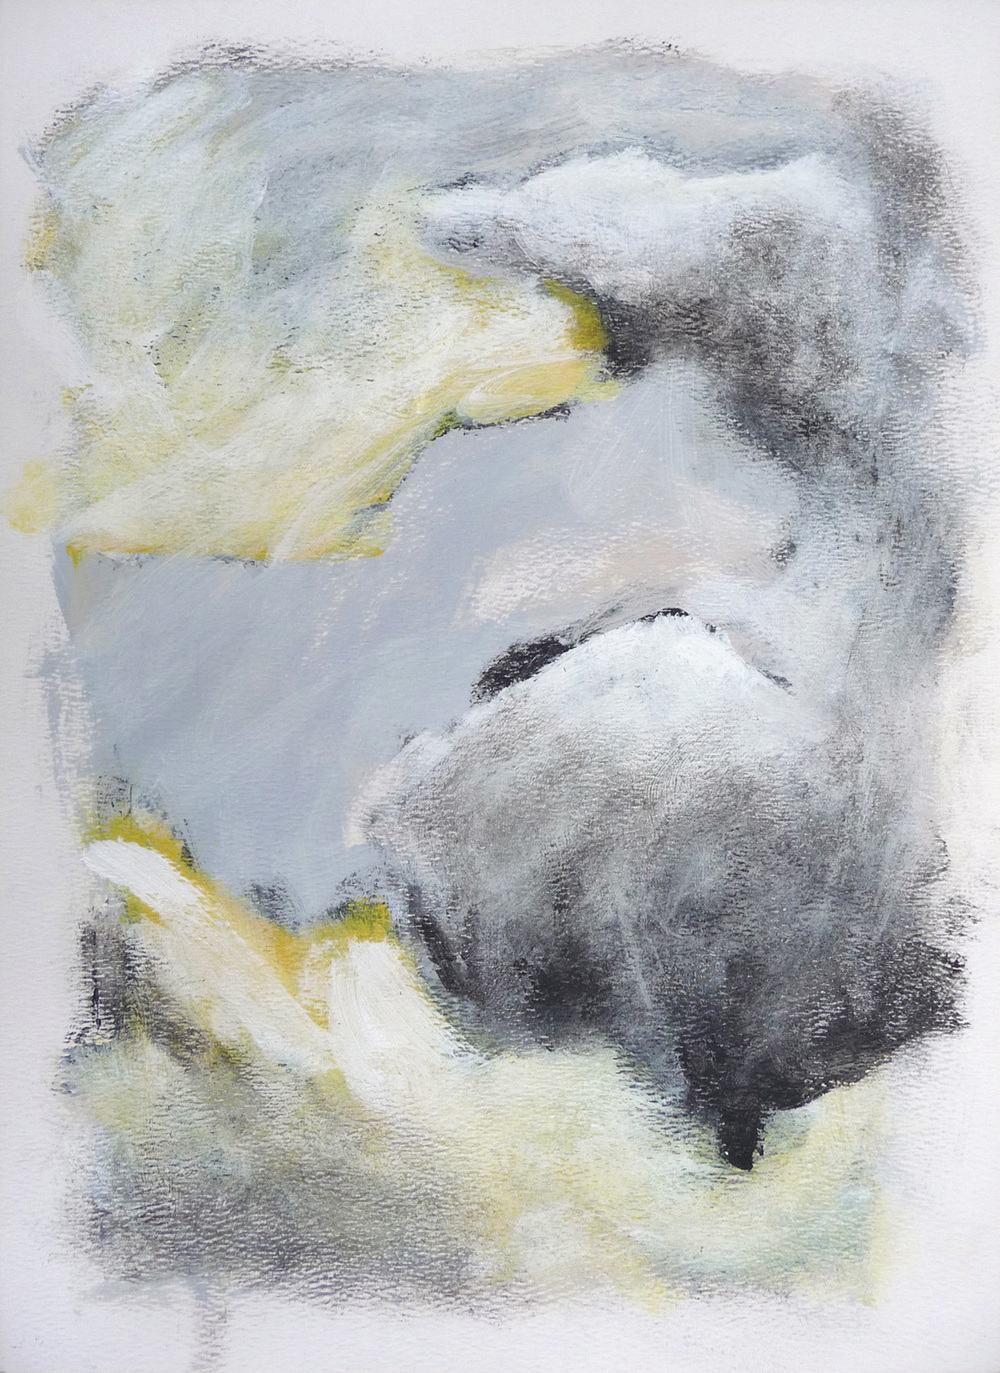 Dawn from Kunstnerhuset    ,   2016. Acrylic and charcoal on paper. 15 x 11 inches (38.1 x 27.9 cm)